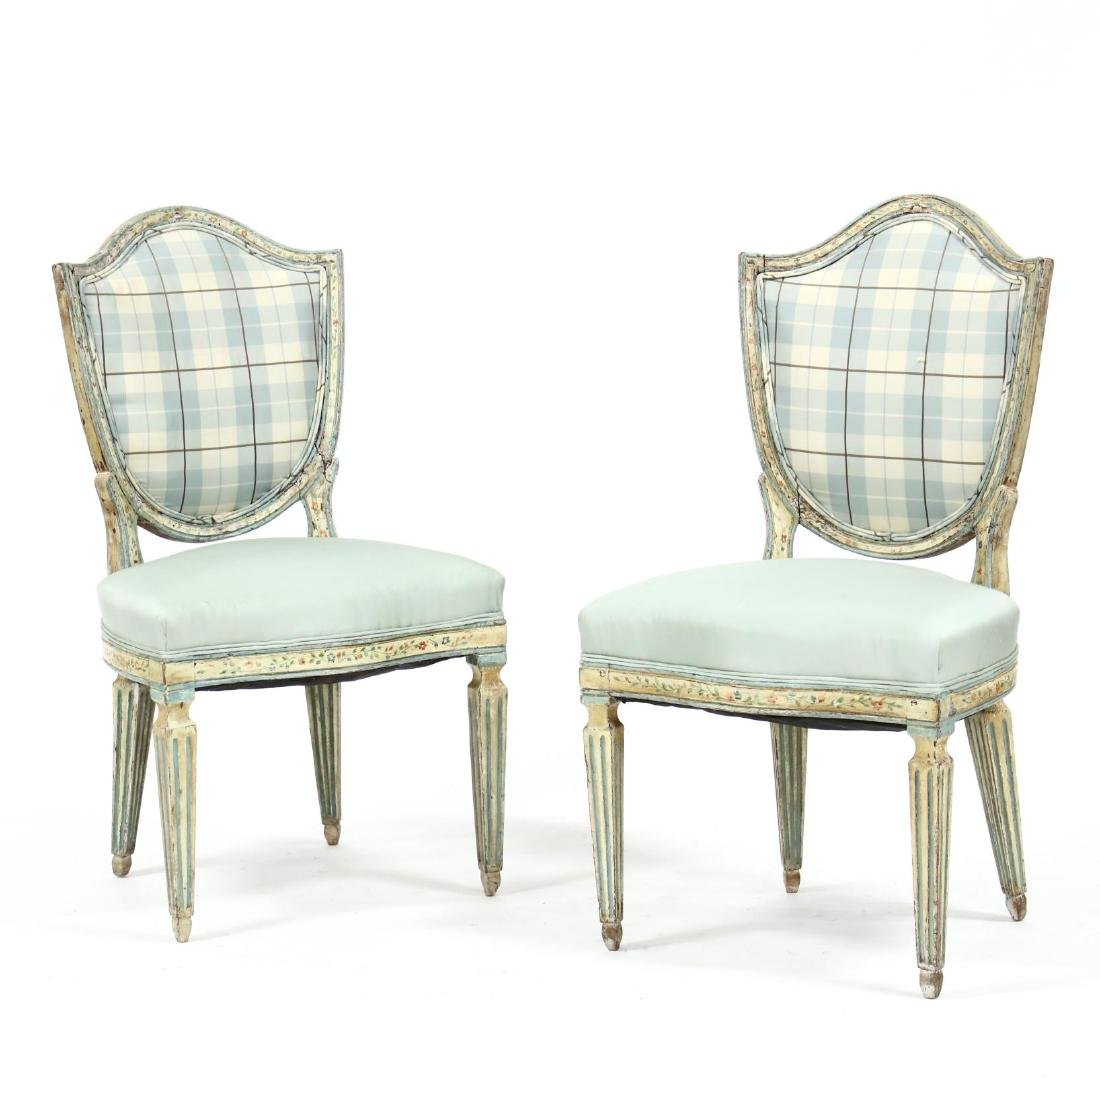 Pair of Antique Italian Painted Side Chairs